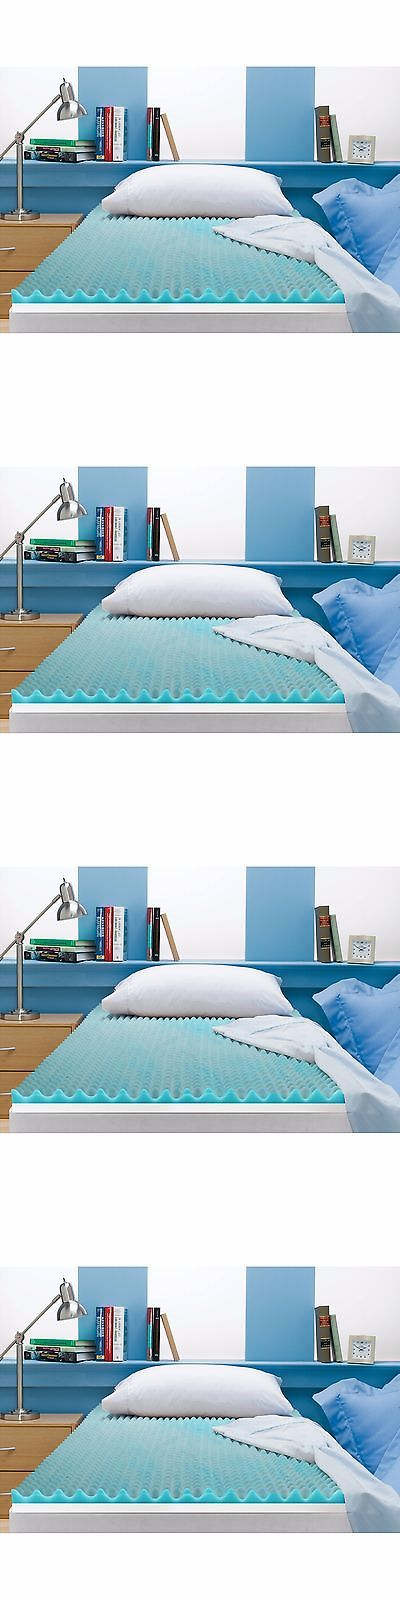 Mattress Pads and Feather Beds 175751: 3 Memory Foam Gel Mattress Topper Cover Orthopedic Bed Sleep Pad Queen Size New -> BUY IT NOW ONLY: $50.81 on eBay!